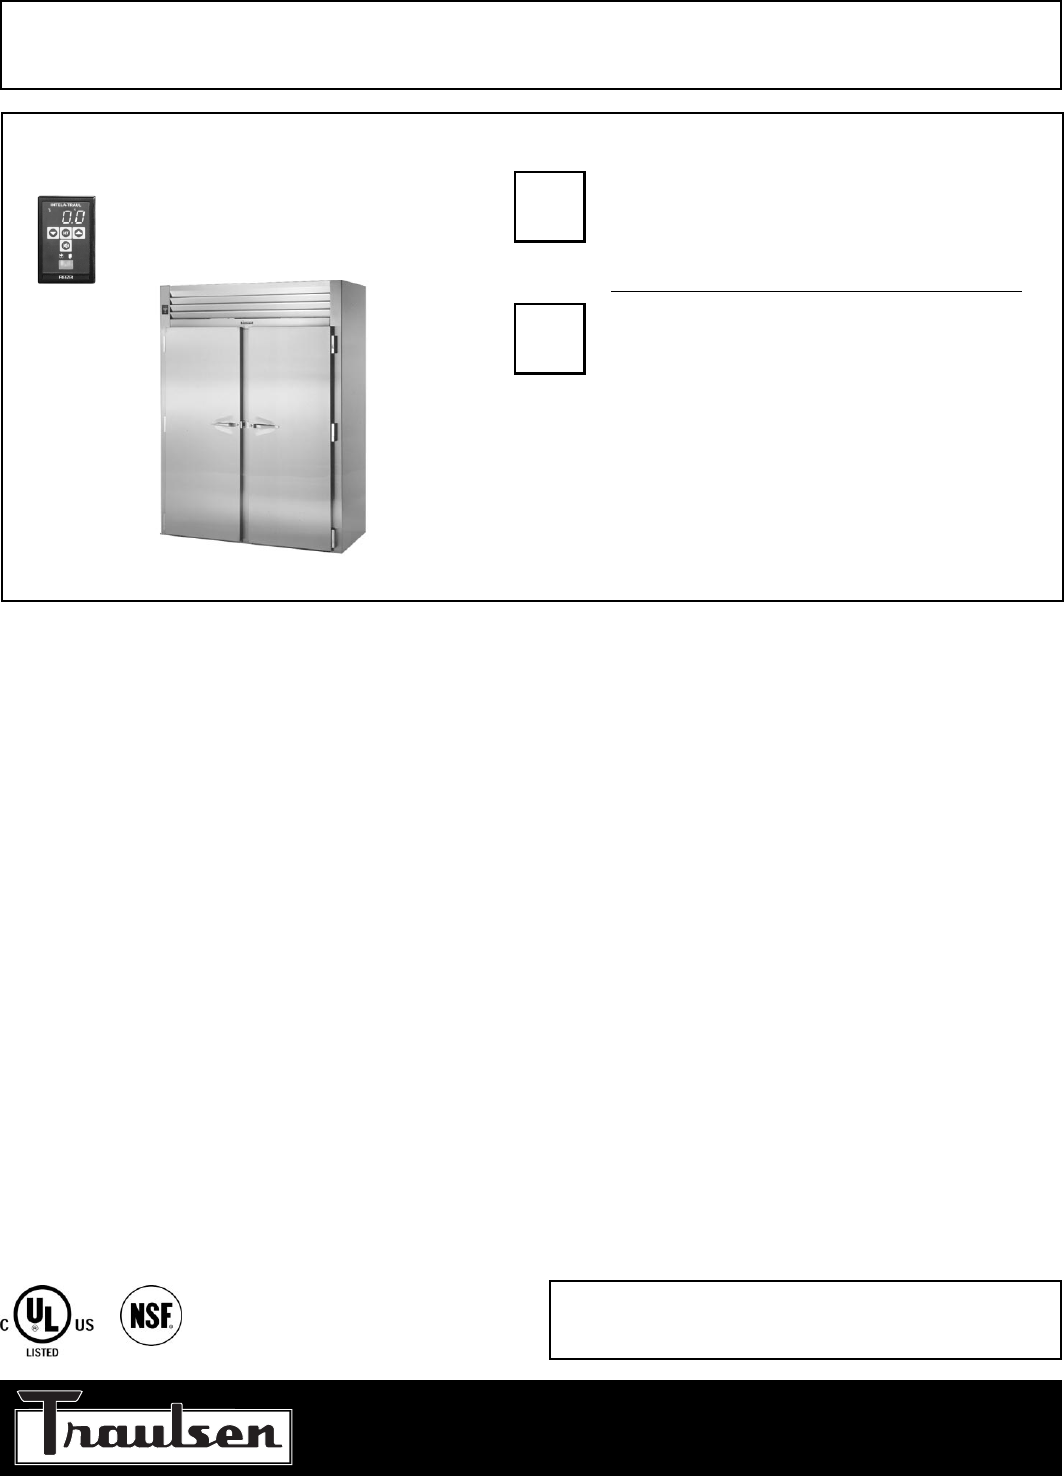 Traulsen freezer rif232hut fhs user guide manualsonline traulsen rif232hut fhs freezer user manual cheapraybanclubmaster Image collections